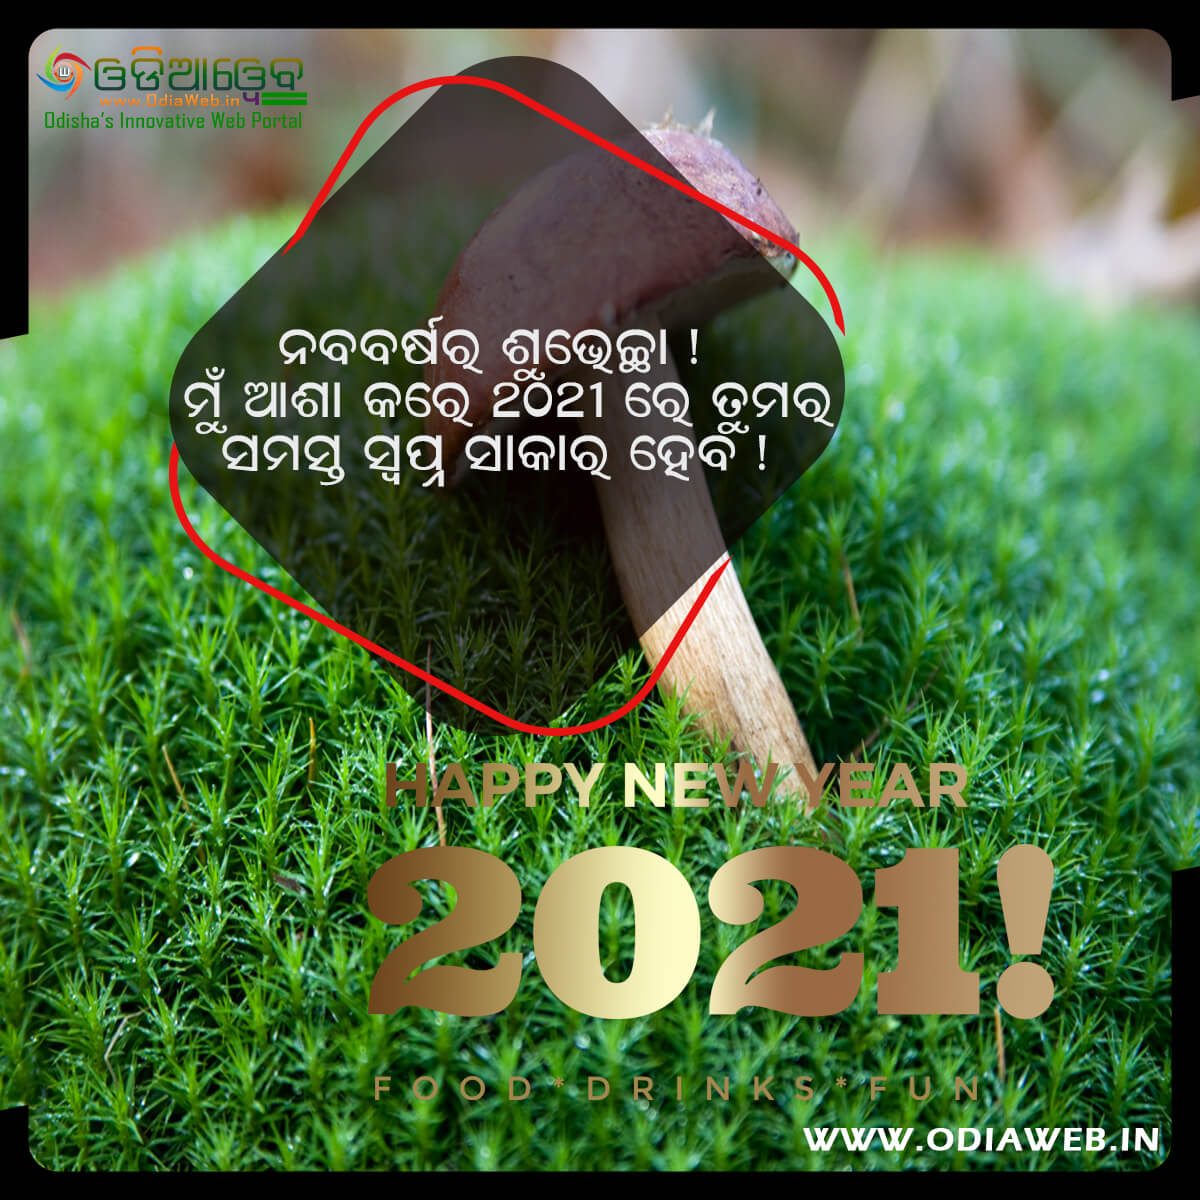 Happy New Year 2021 Wishes Odia (5)